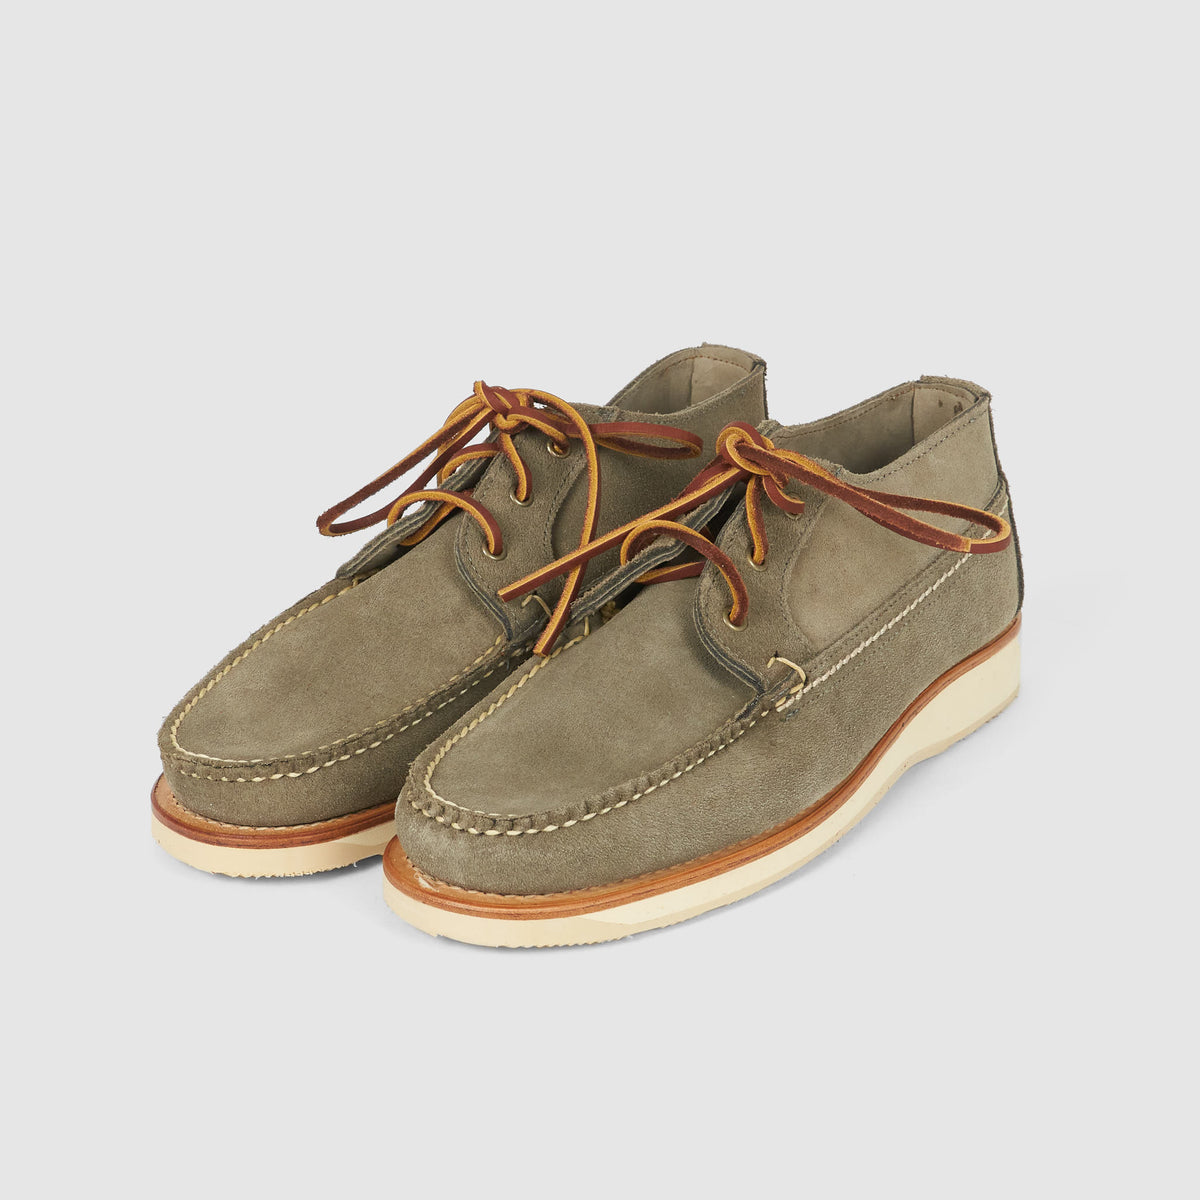 Red Wing Shoes Chukka Moc Toe 09166